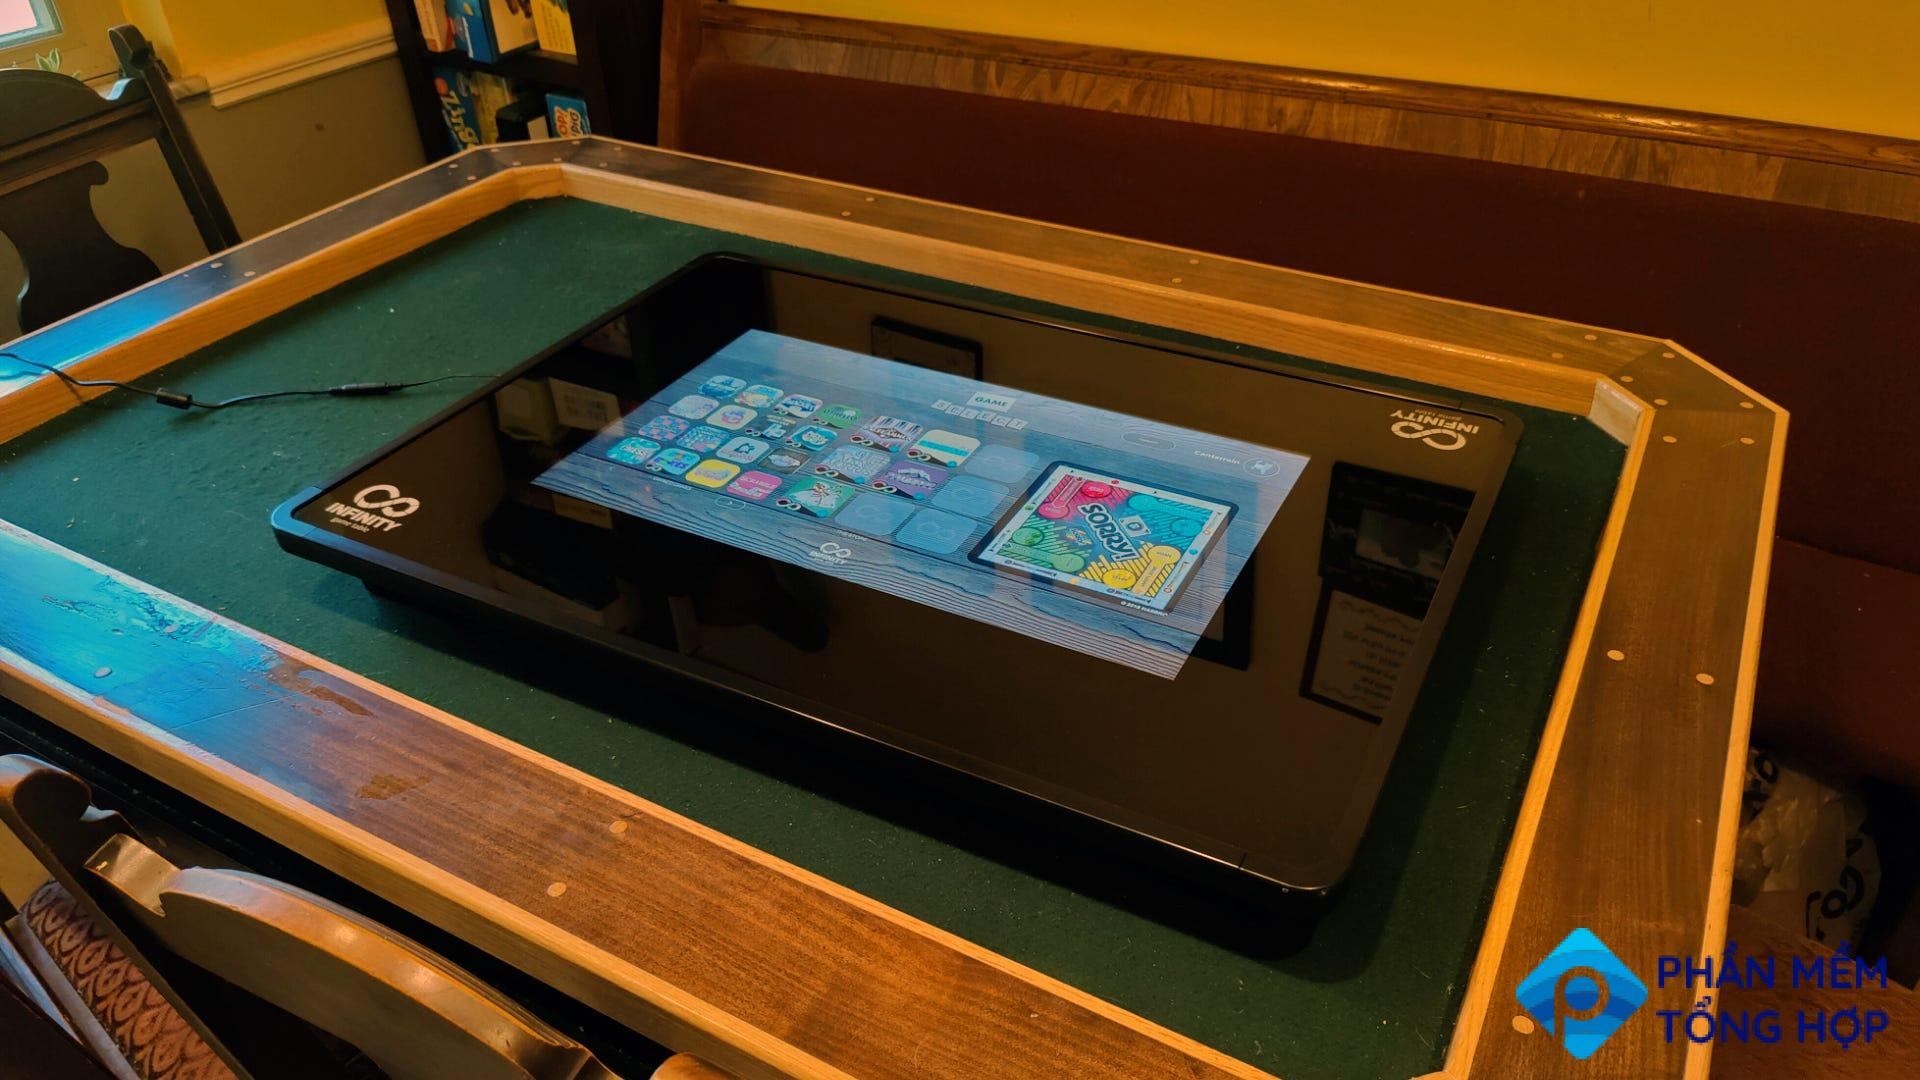 An Infinity Game Table inset into a board game table.